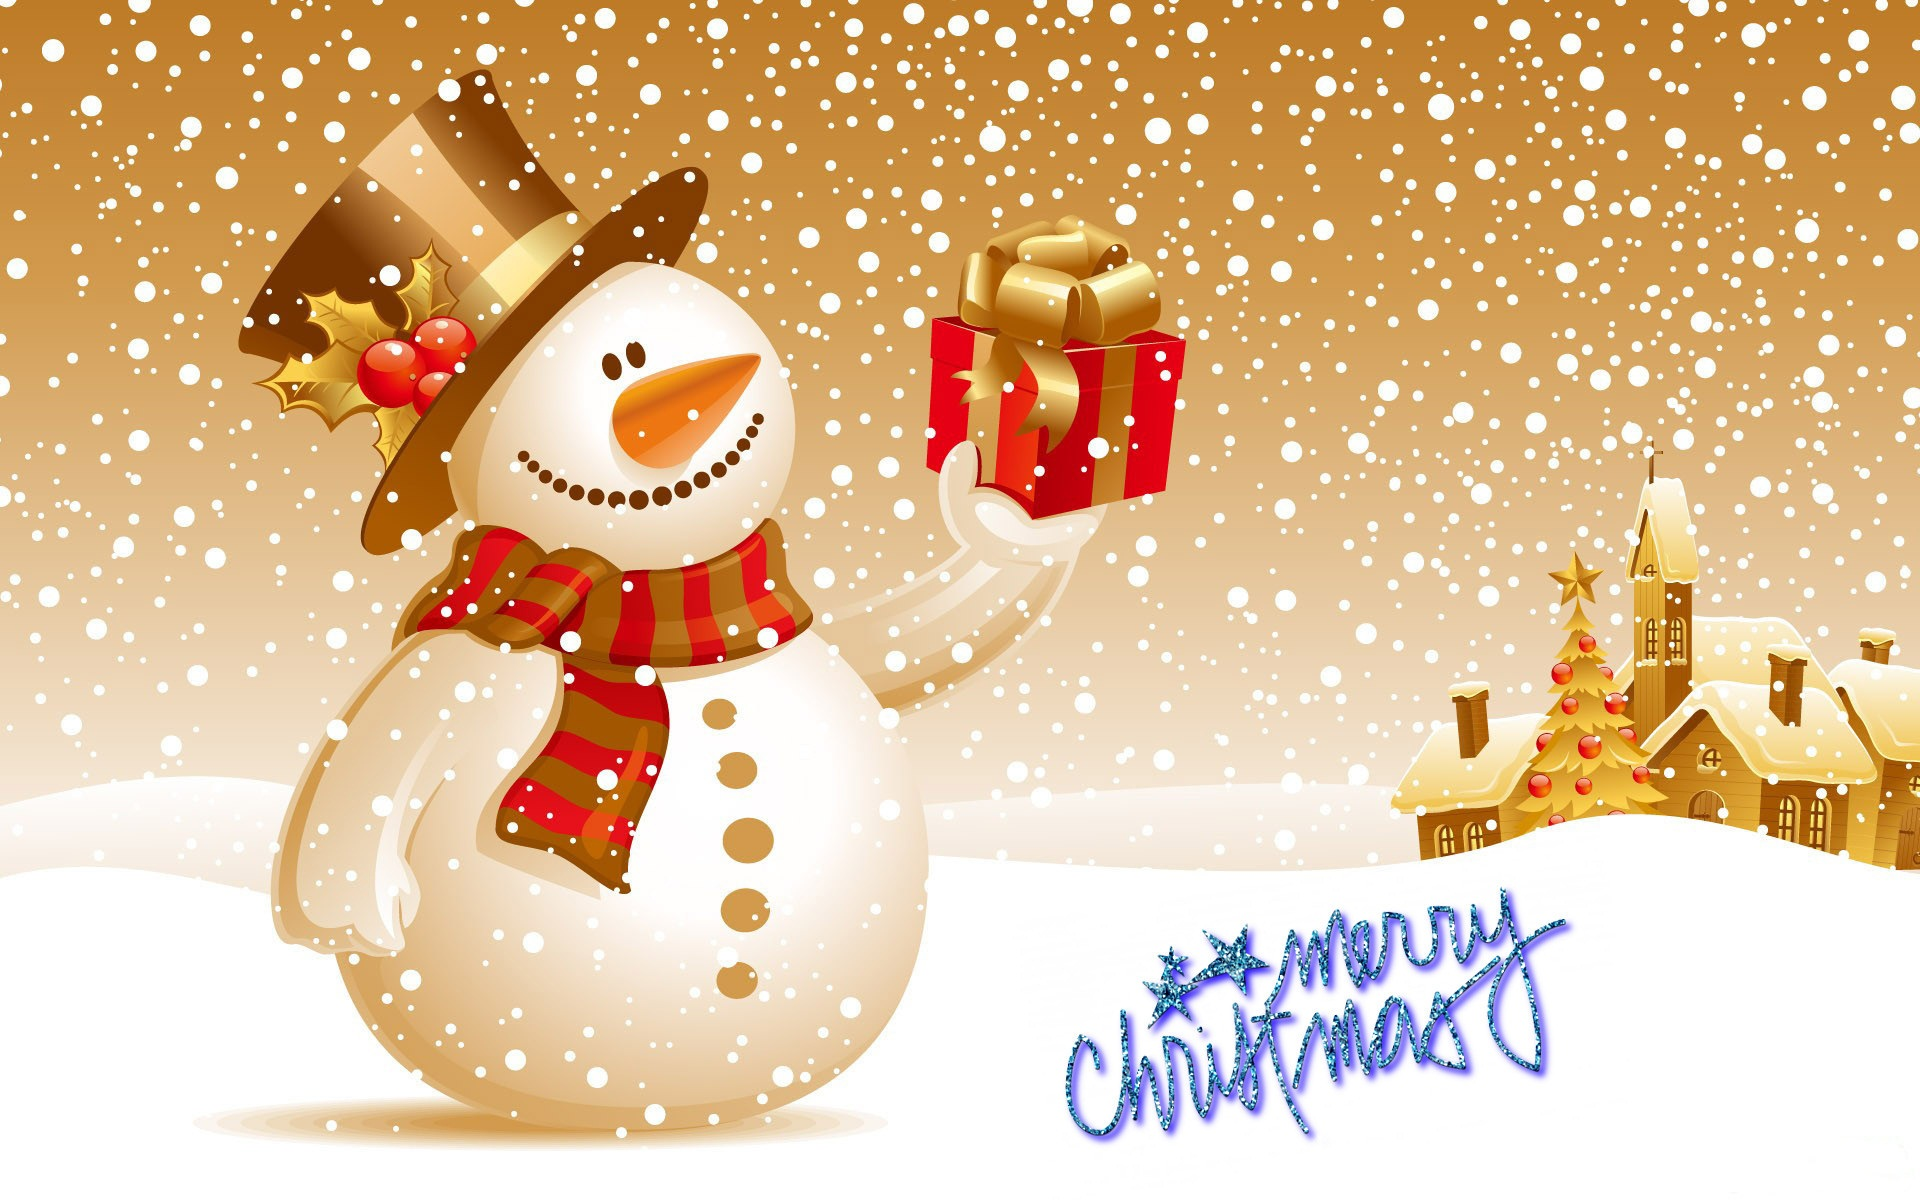 Merry Christmas Wallpaper Widescreen New